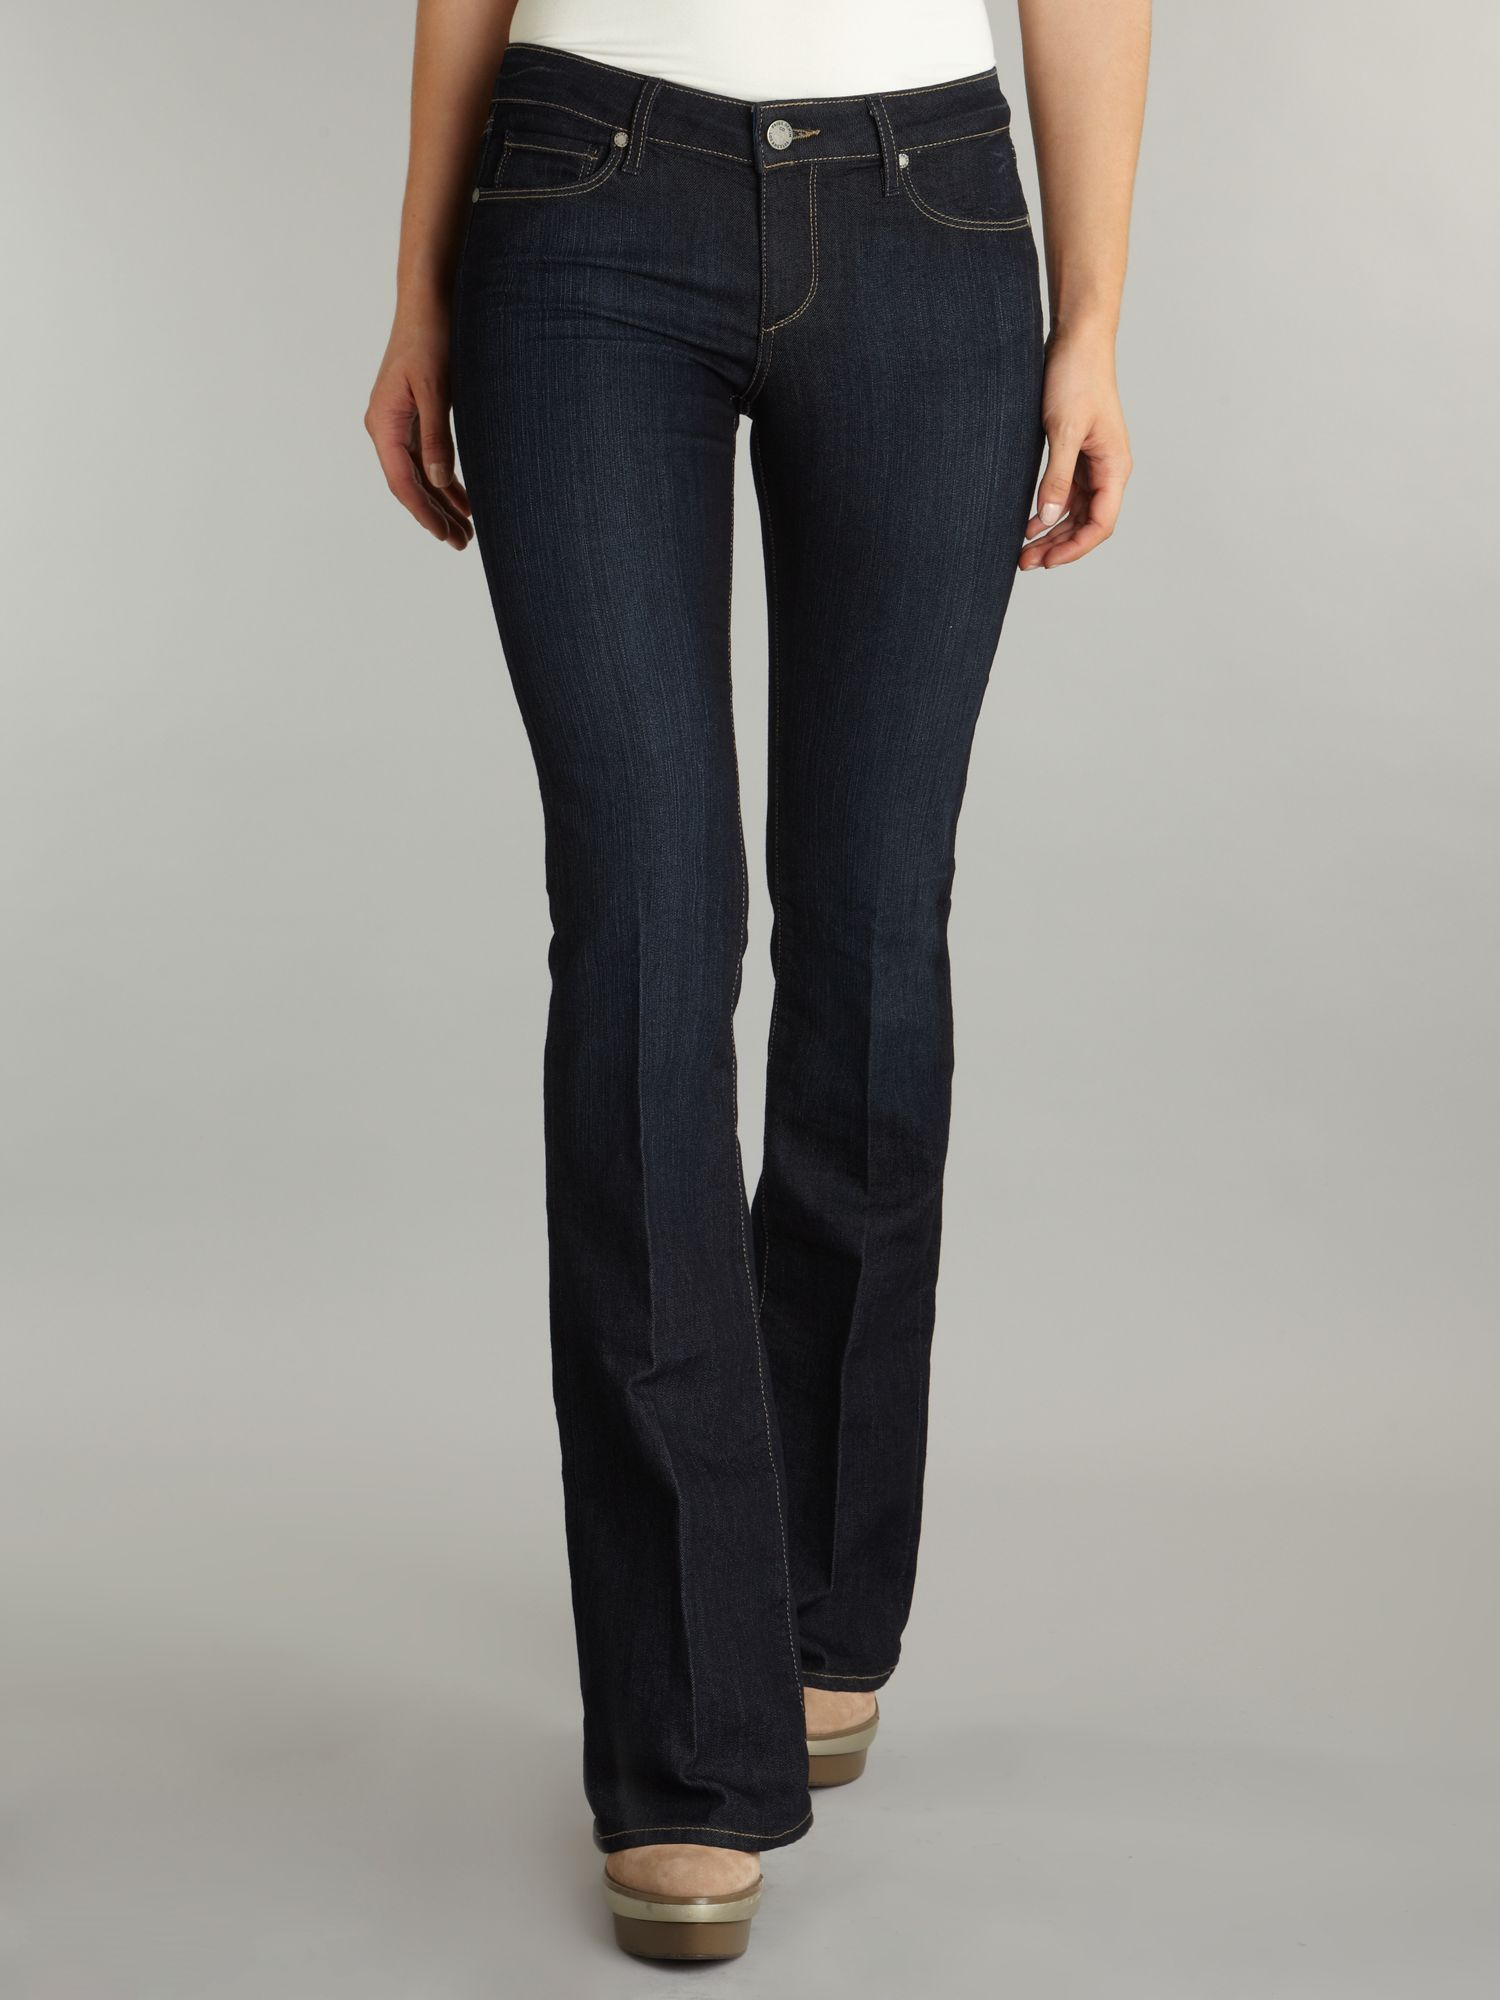 Skyline bootcut jeans in Fountain